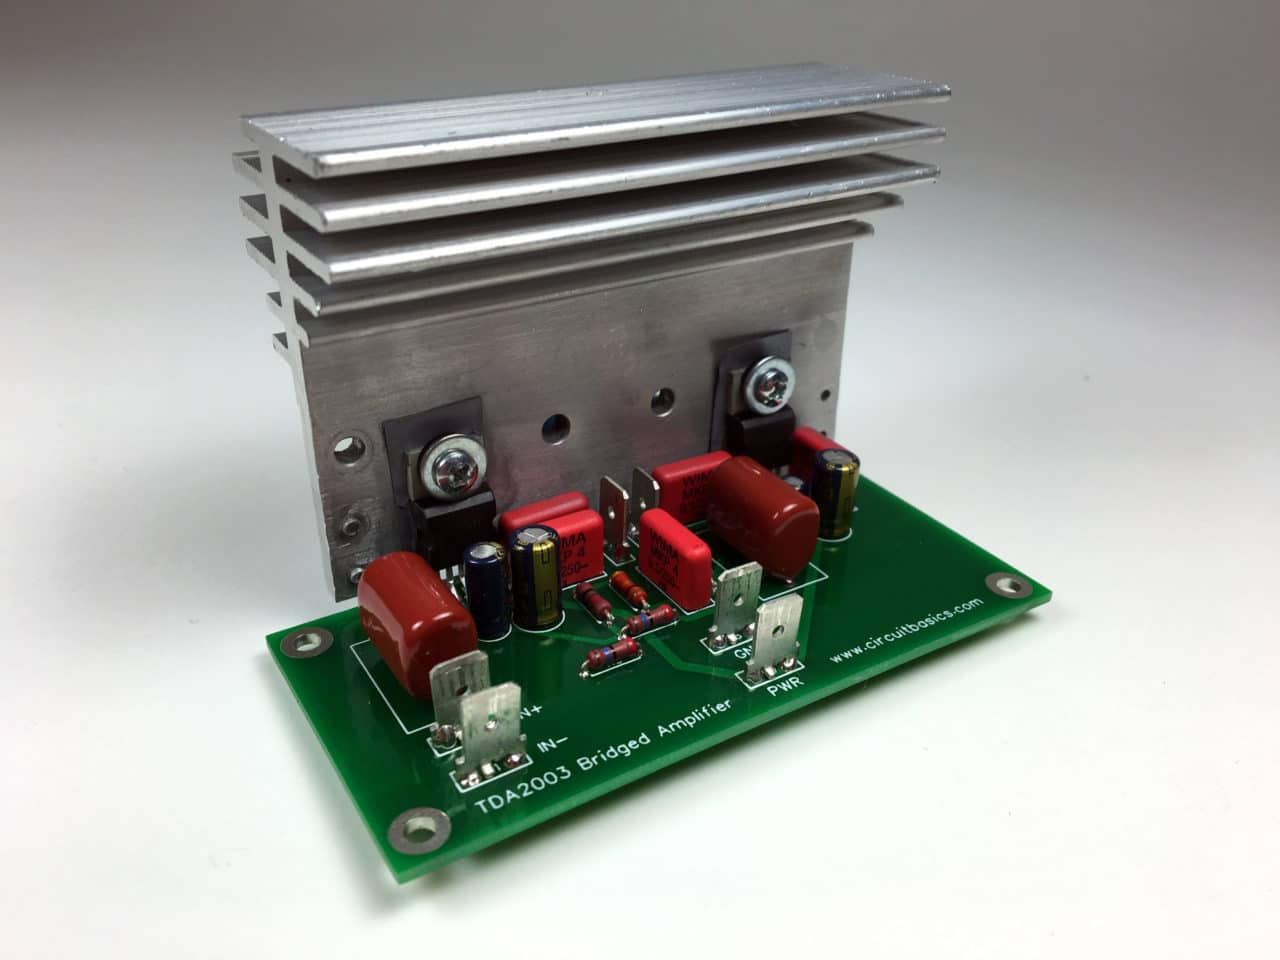 A Complete Guide To Design And Build Hi Fi Lm3886 Amplifier Top View Of The Completed Circuit Board Waiting Be Mounted On For Building Tda2003 Bridged Stereo Amplifiers